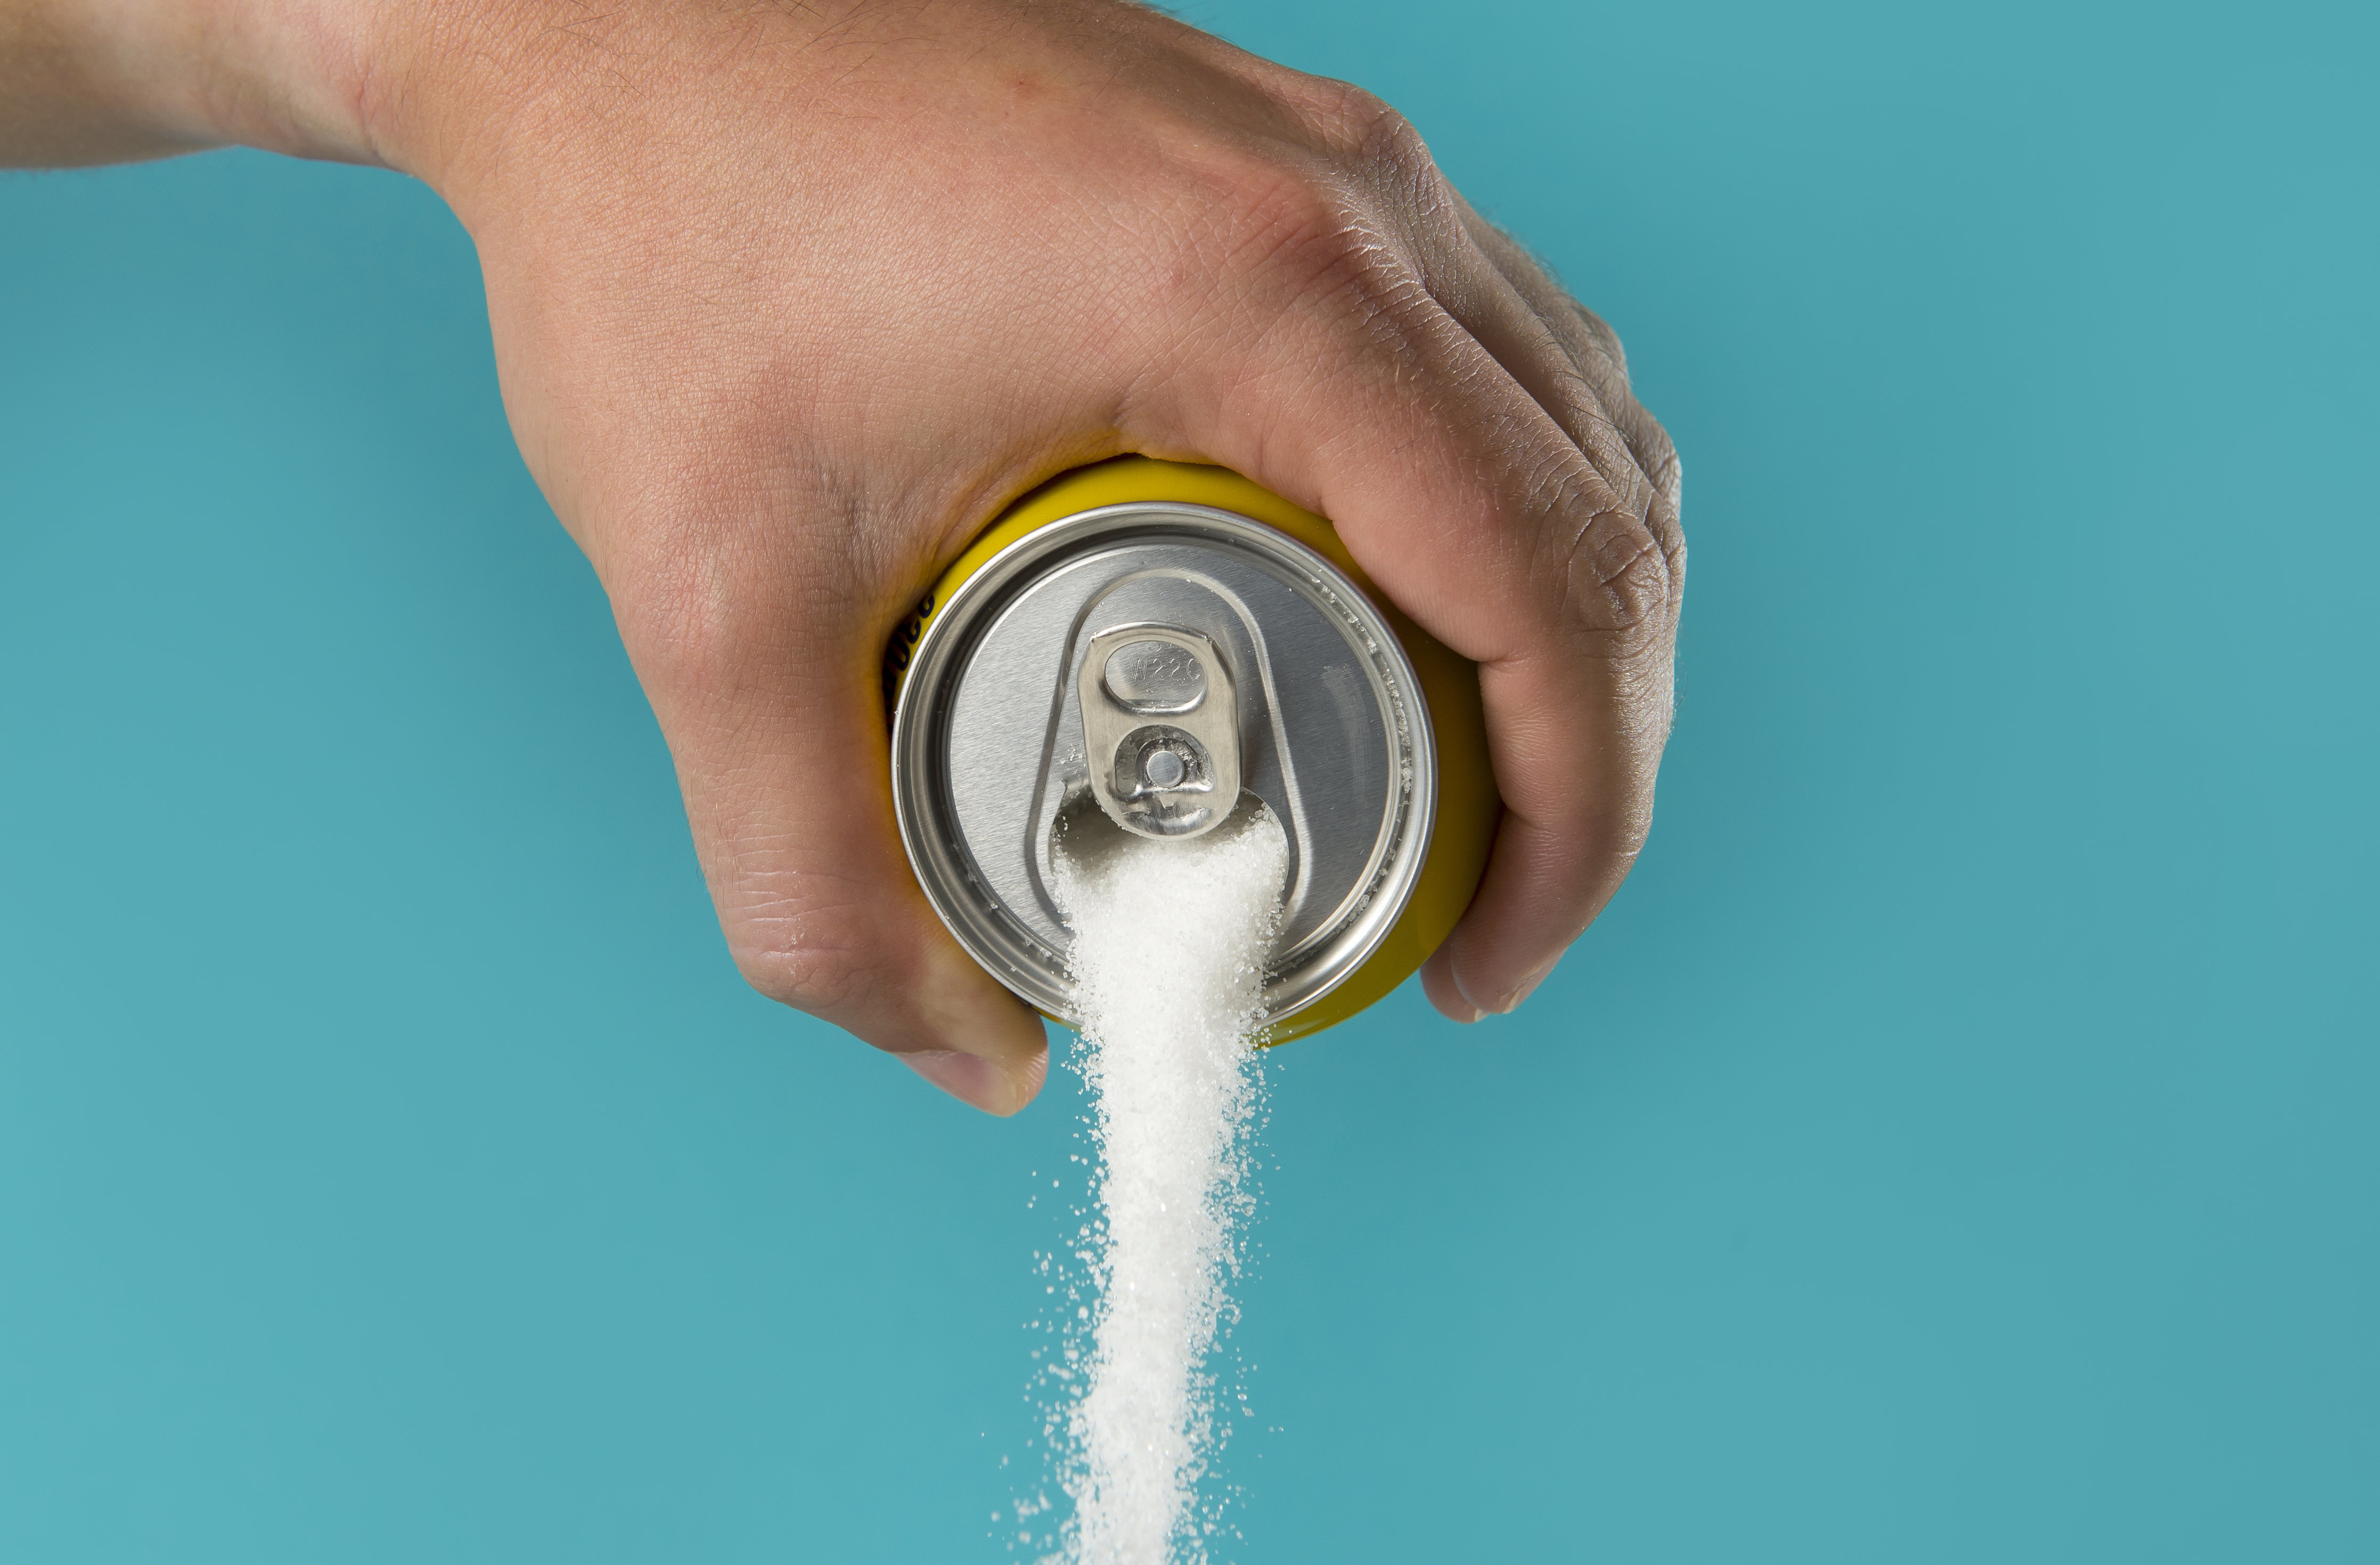 Average Energy Drink Contains More Sugar Than An Adult's Recommended Daily Allowance